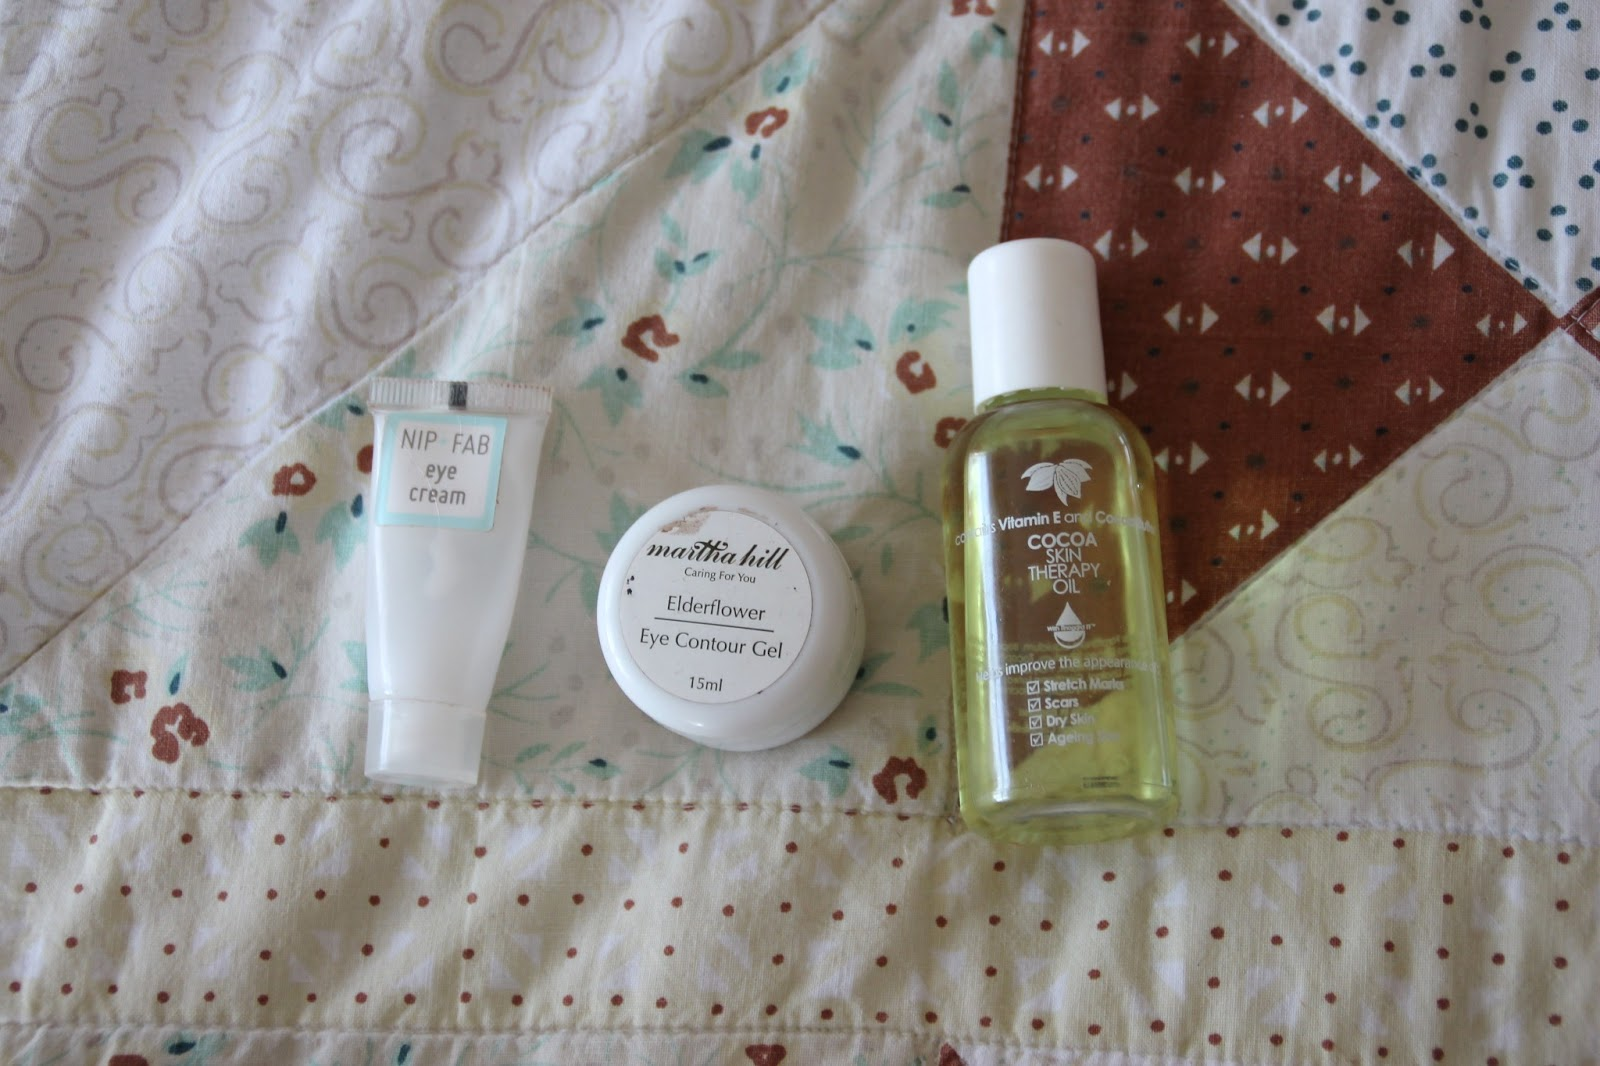 Collection: My Skincare Products - feat: Amie, No7, Soap